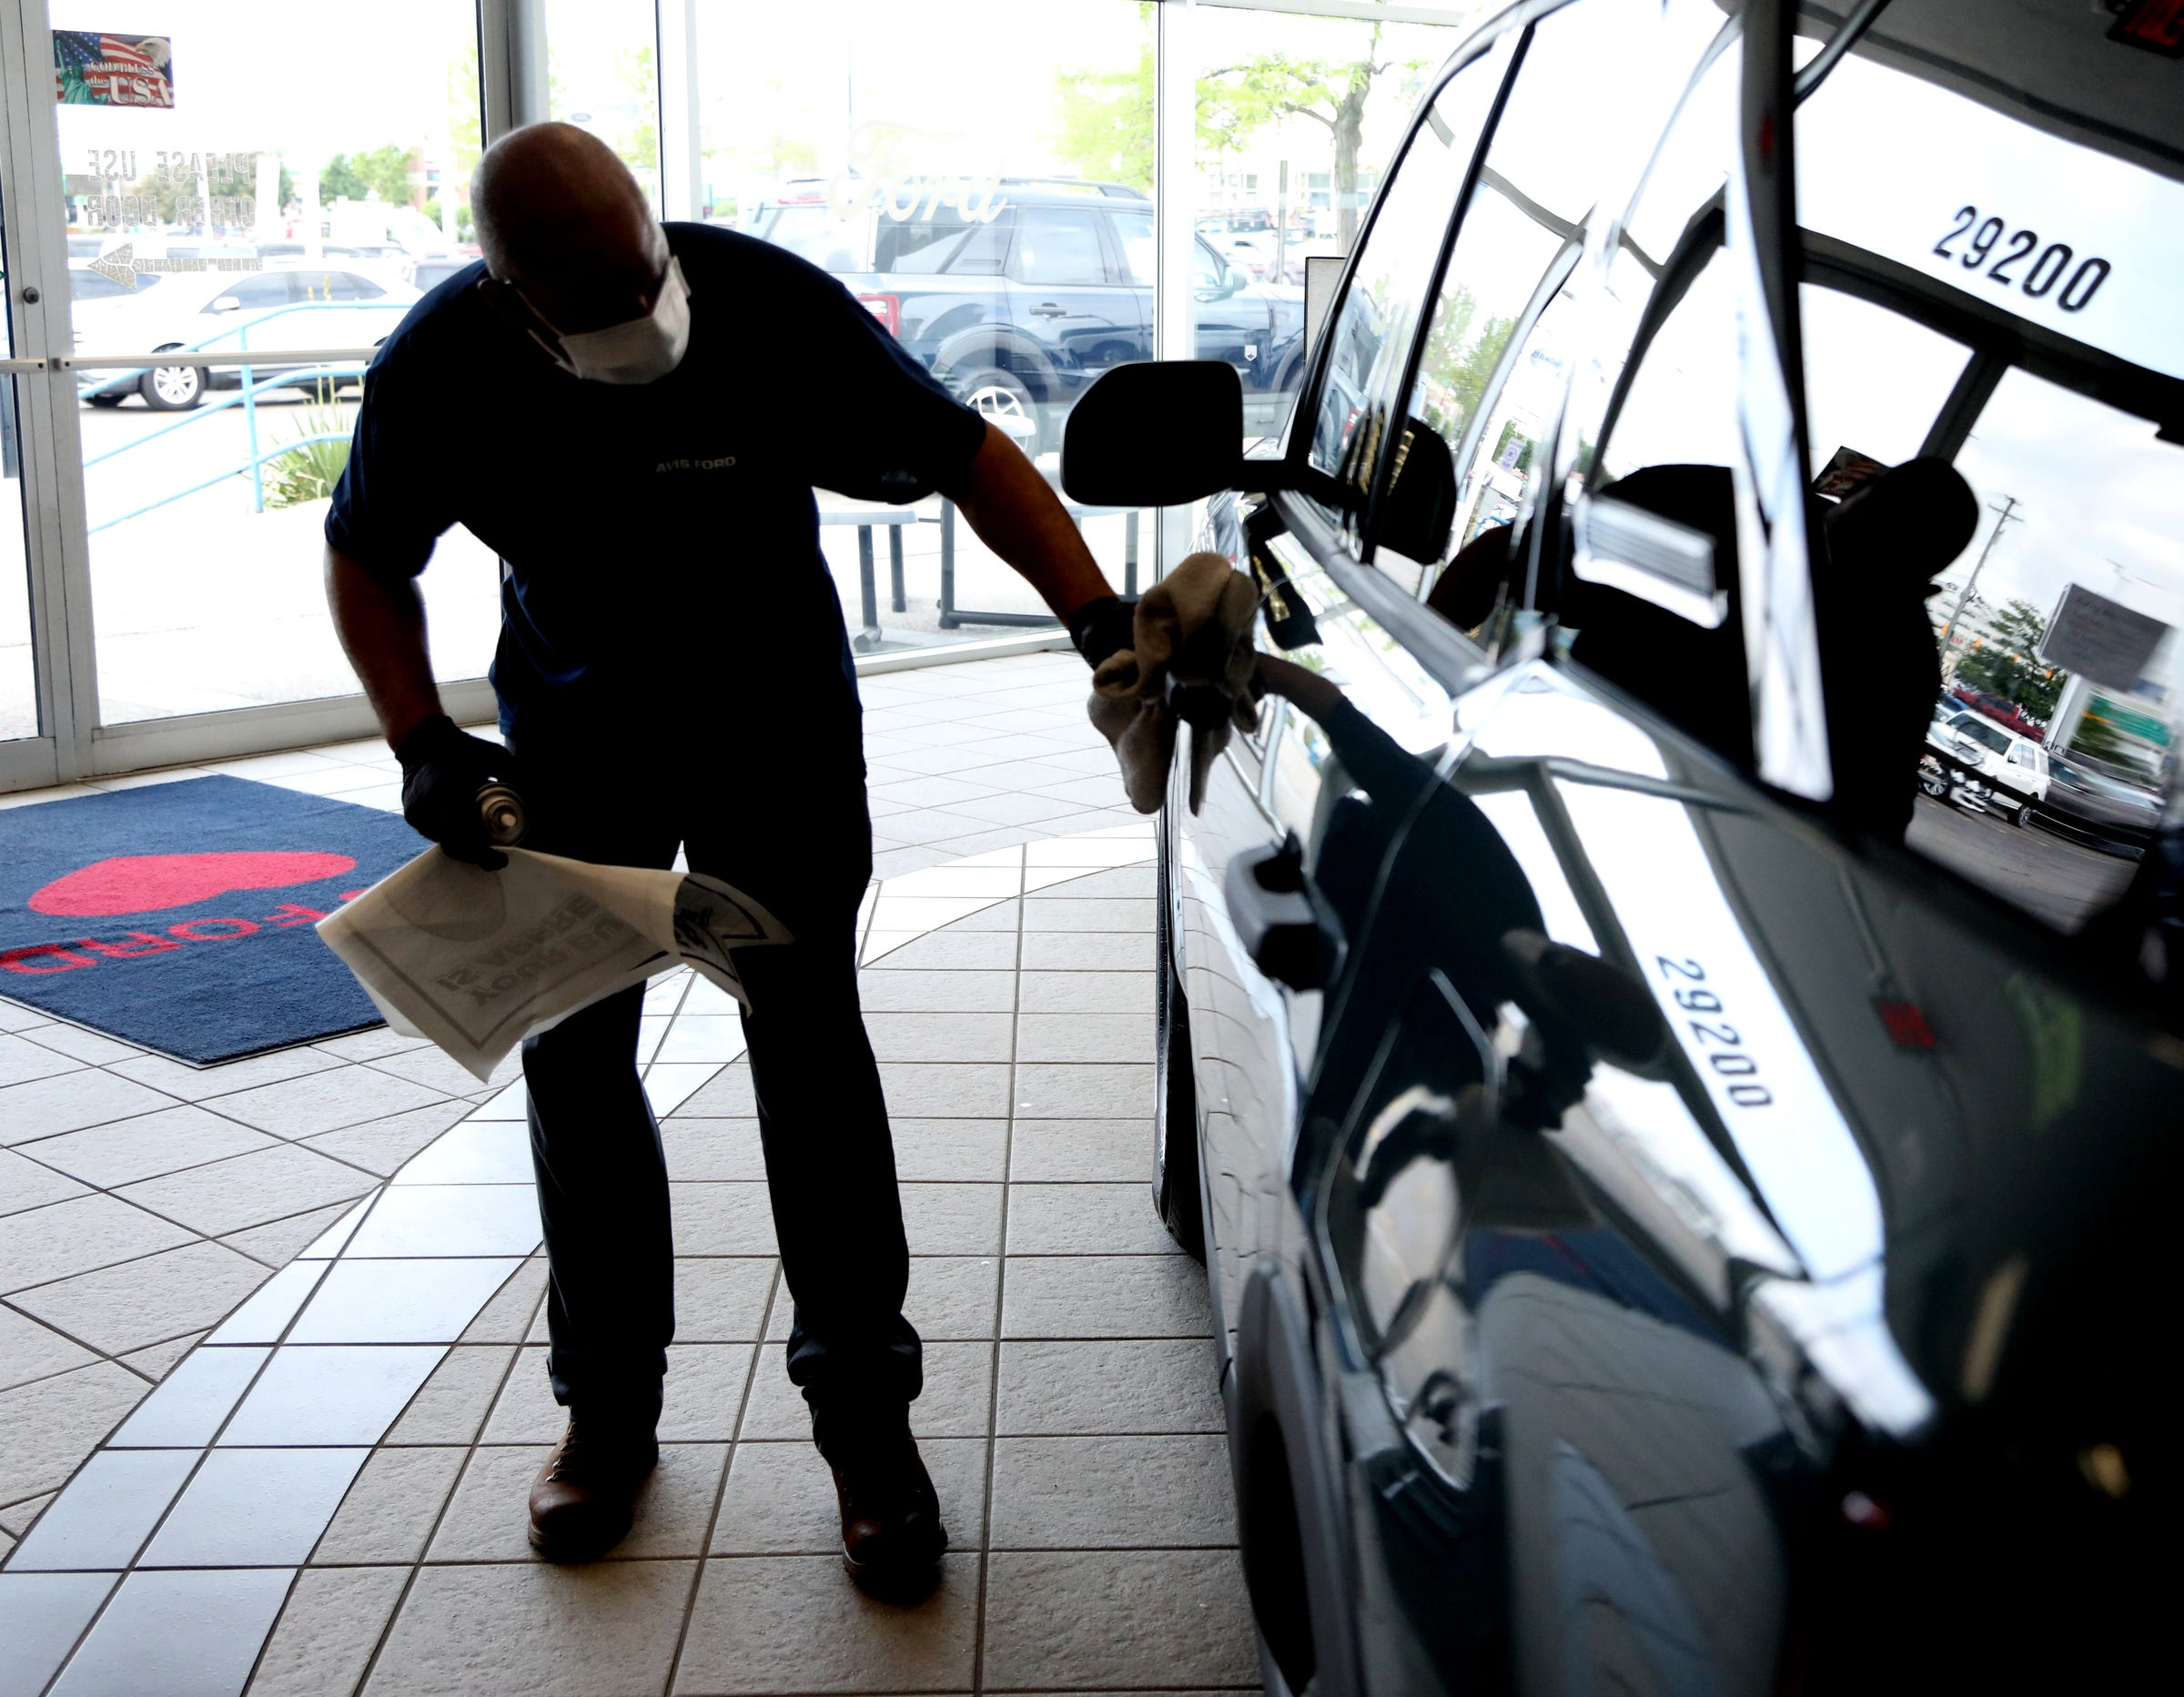 Car-buying tips for July 4 weekend: Get ready to compromise as chip shortage limits options, raises prices